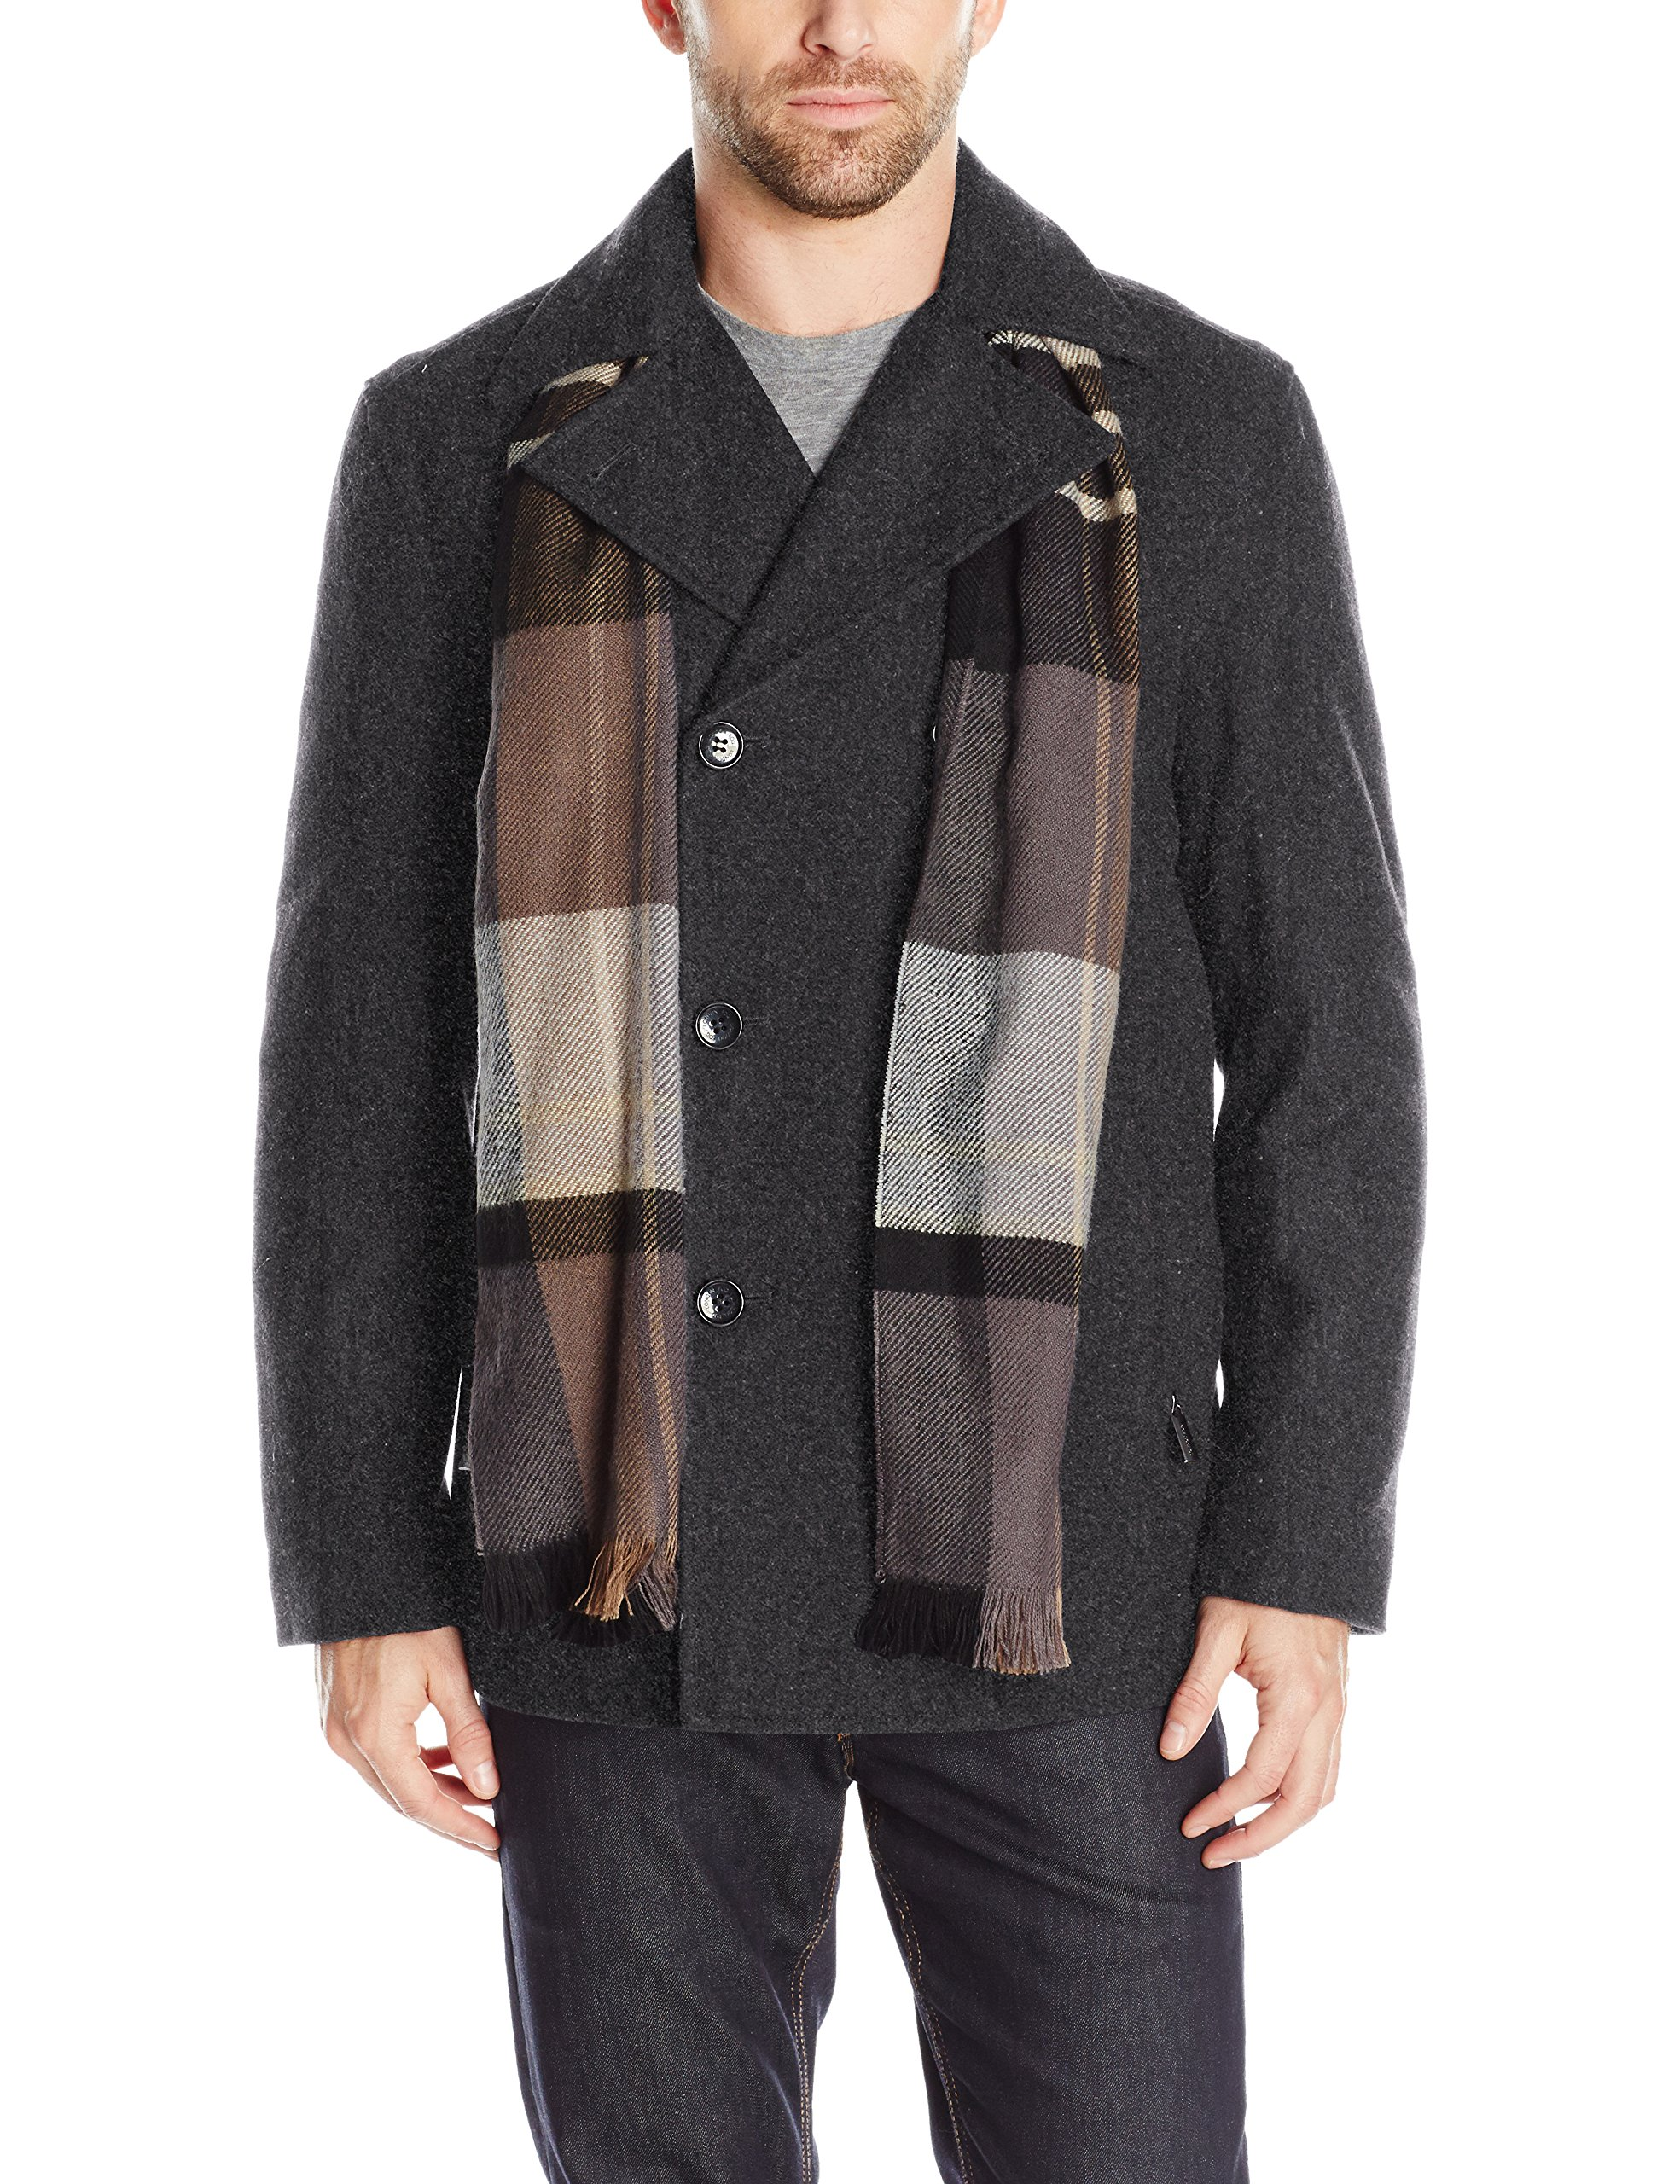 London Fog Men's Wool Blend Double Breasted Pea Coat, New Charcoal, S by London Fog